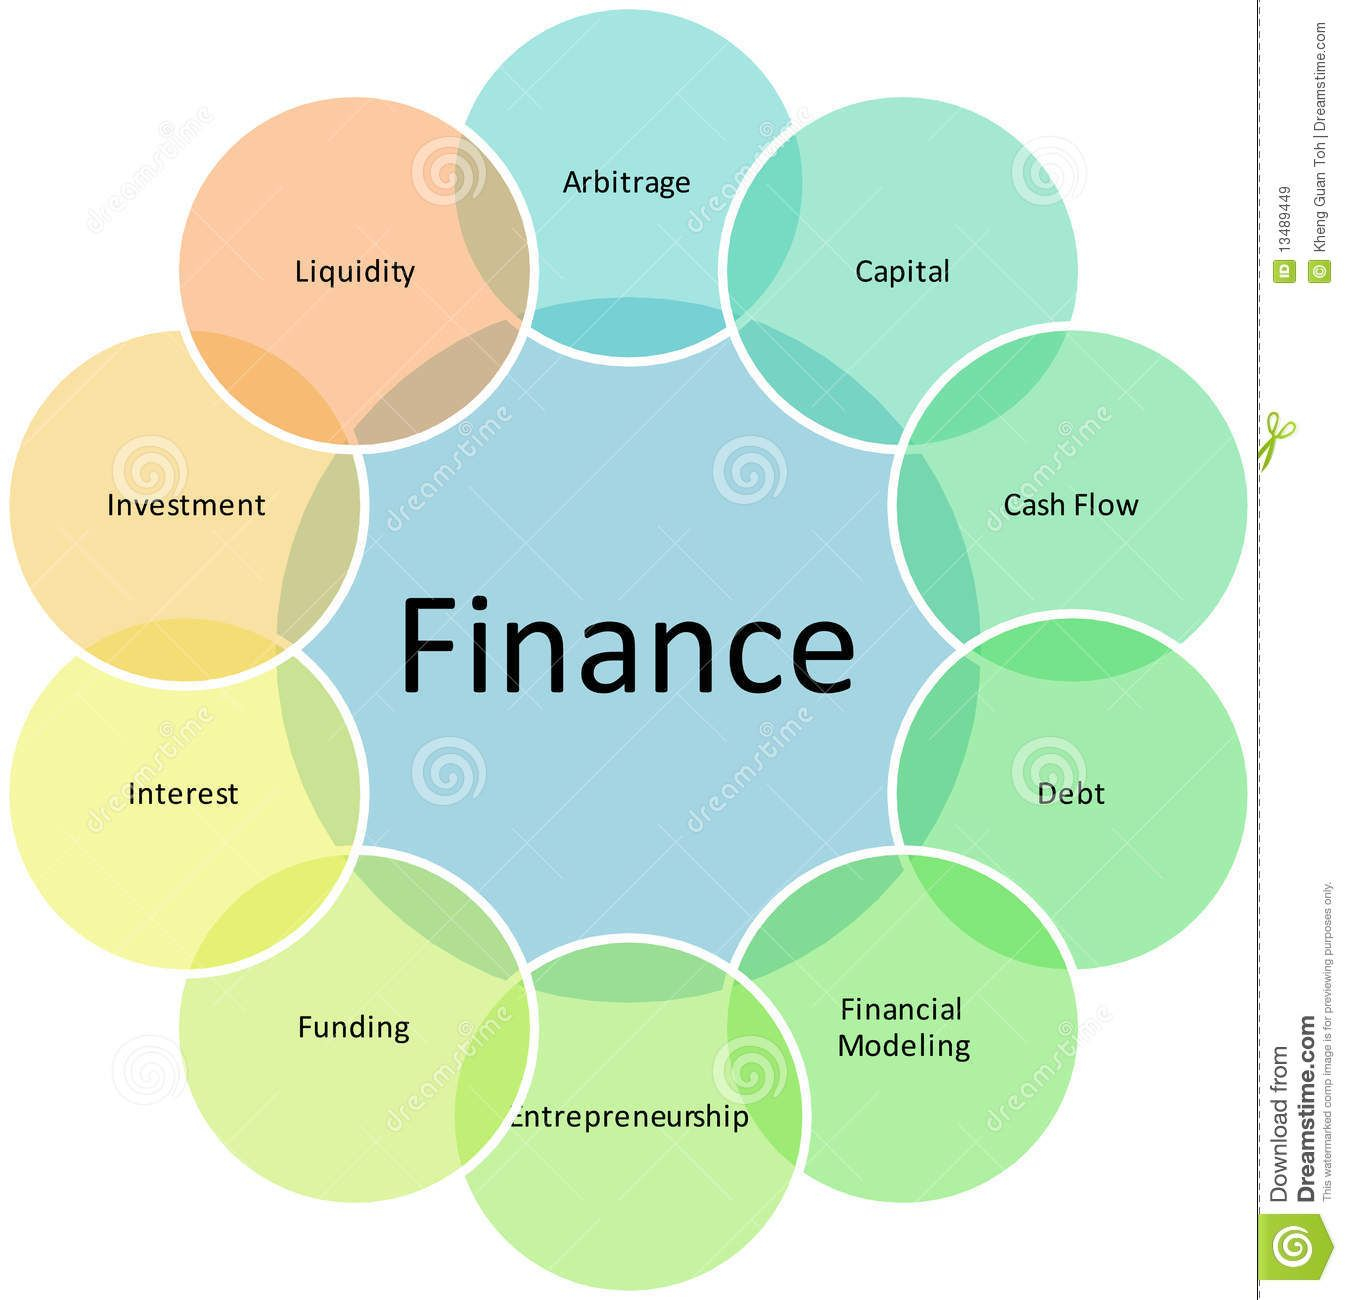 medium resolution of finance components business diagram stock illustration